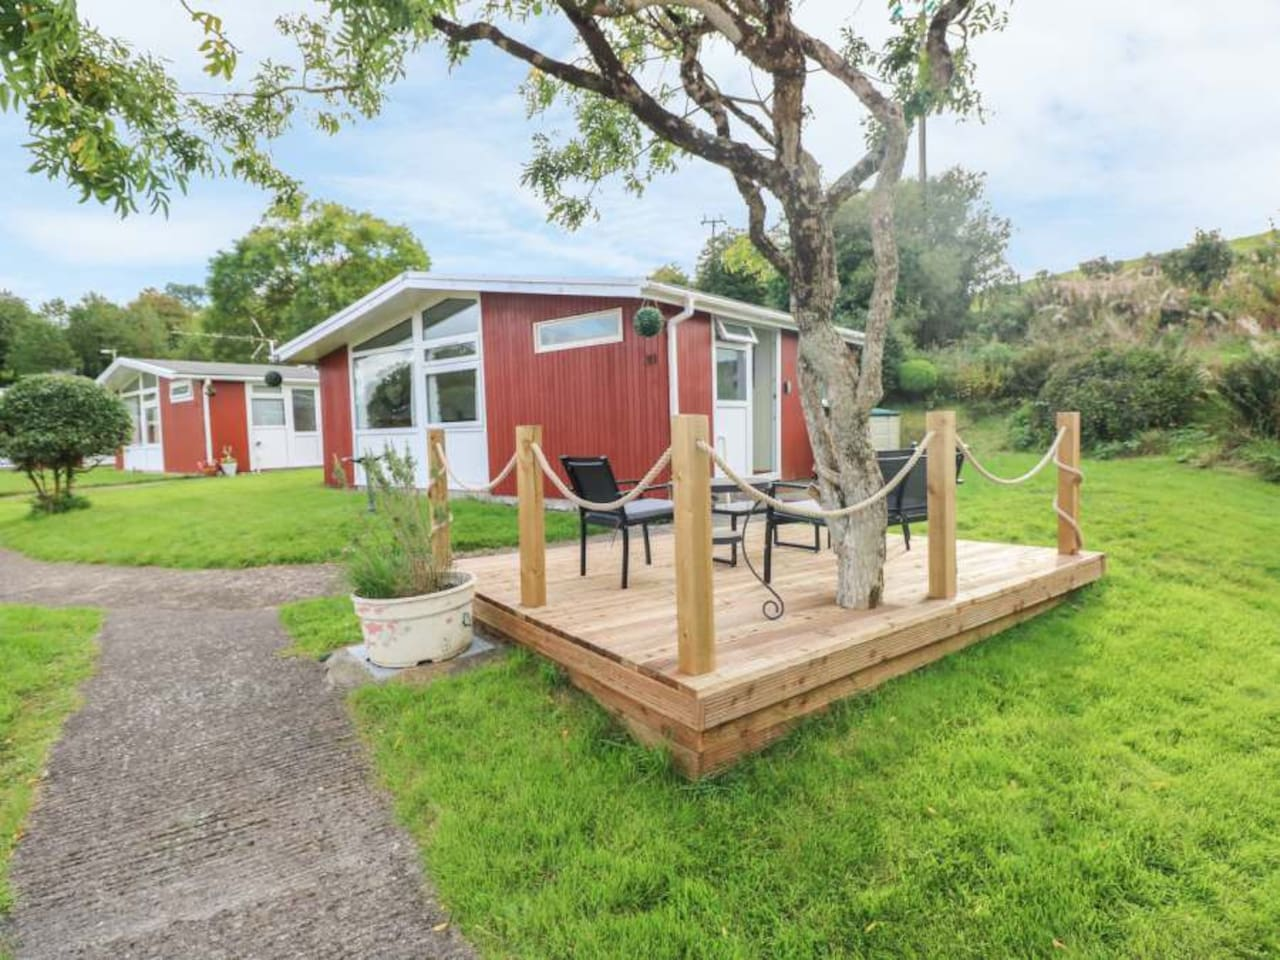 Cwtchy Coo Lodge with the decking and garden area